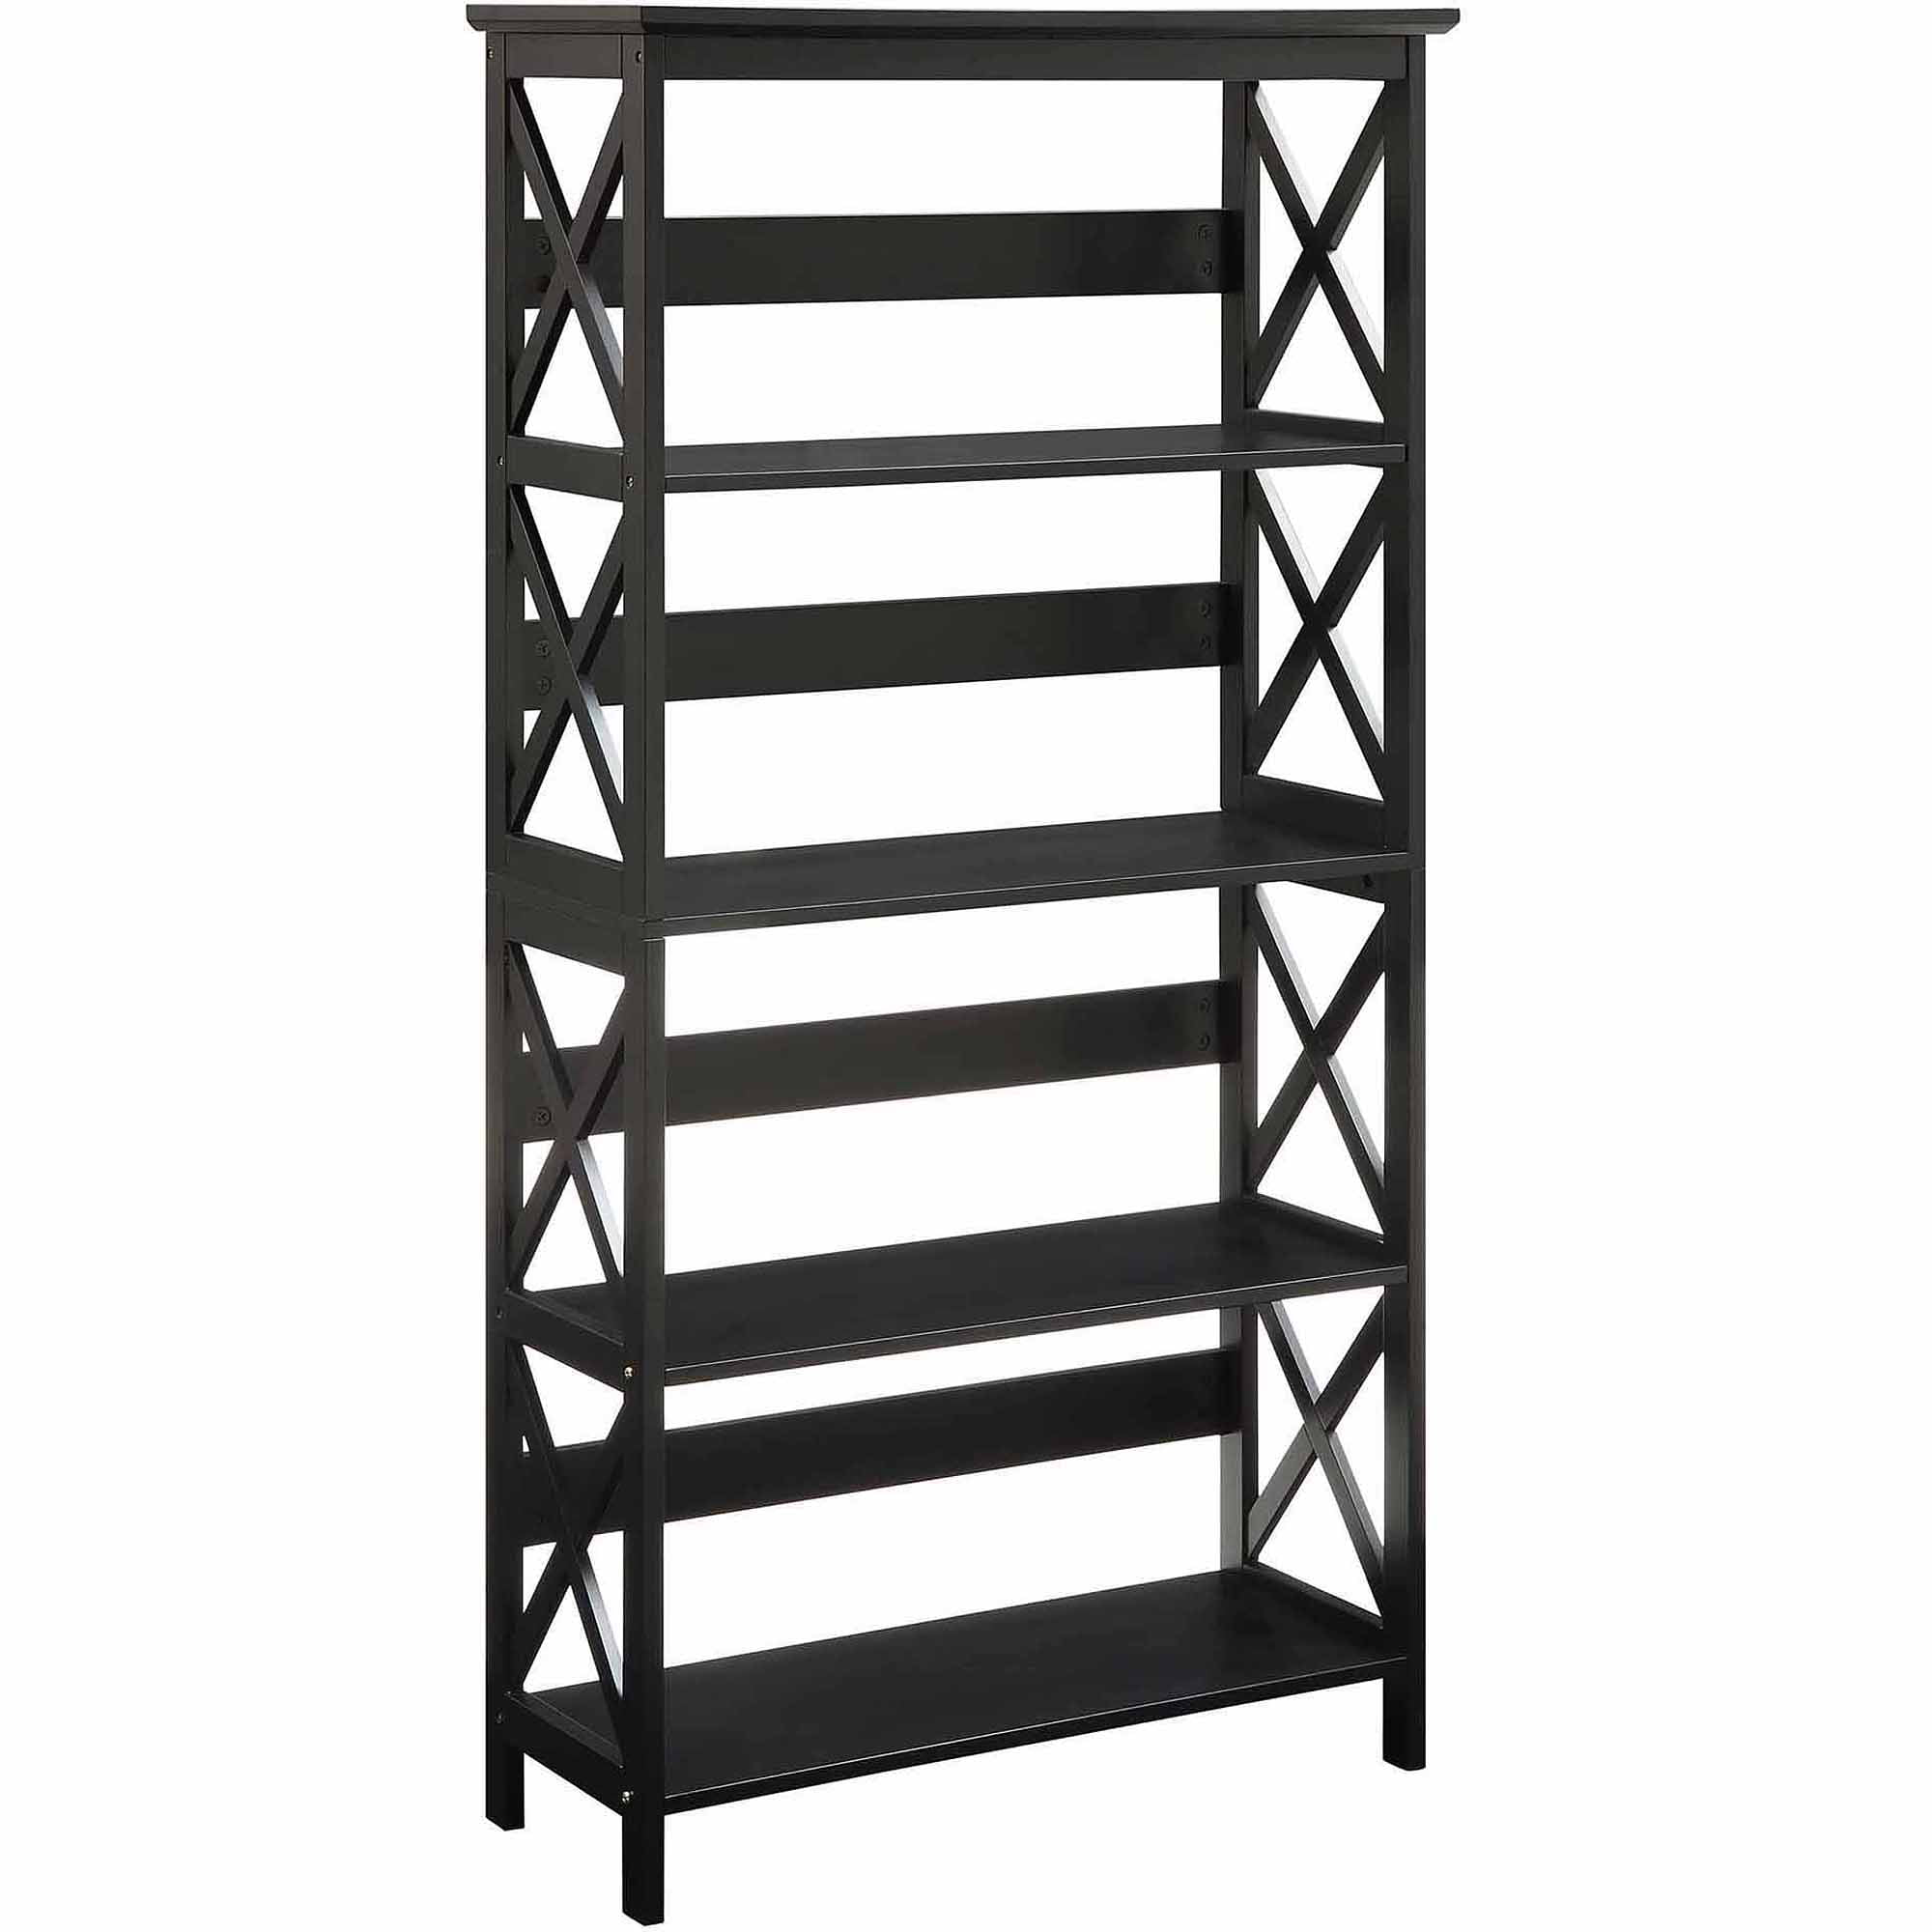 Details About Black Open Shelf Bookcase Wood Backless Display Shelves Rack  Stand Small Library